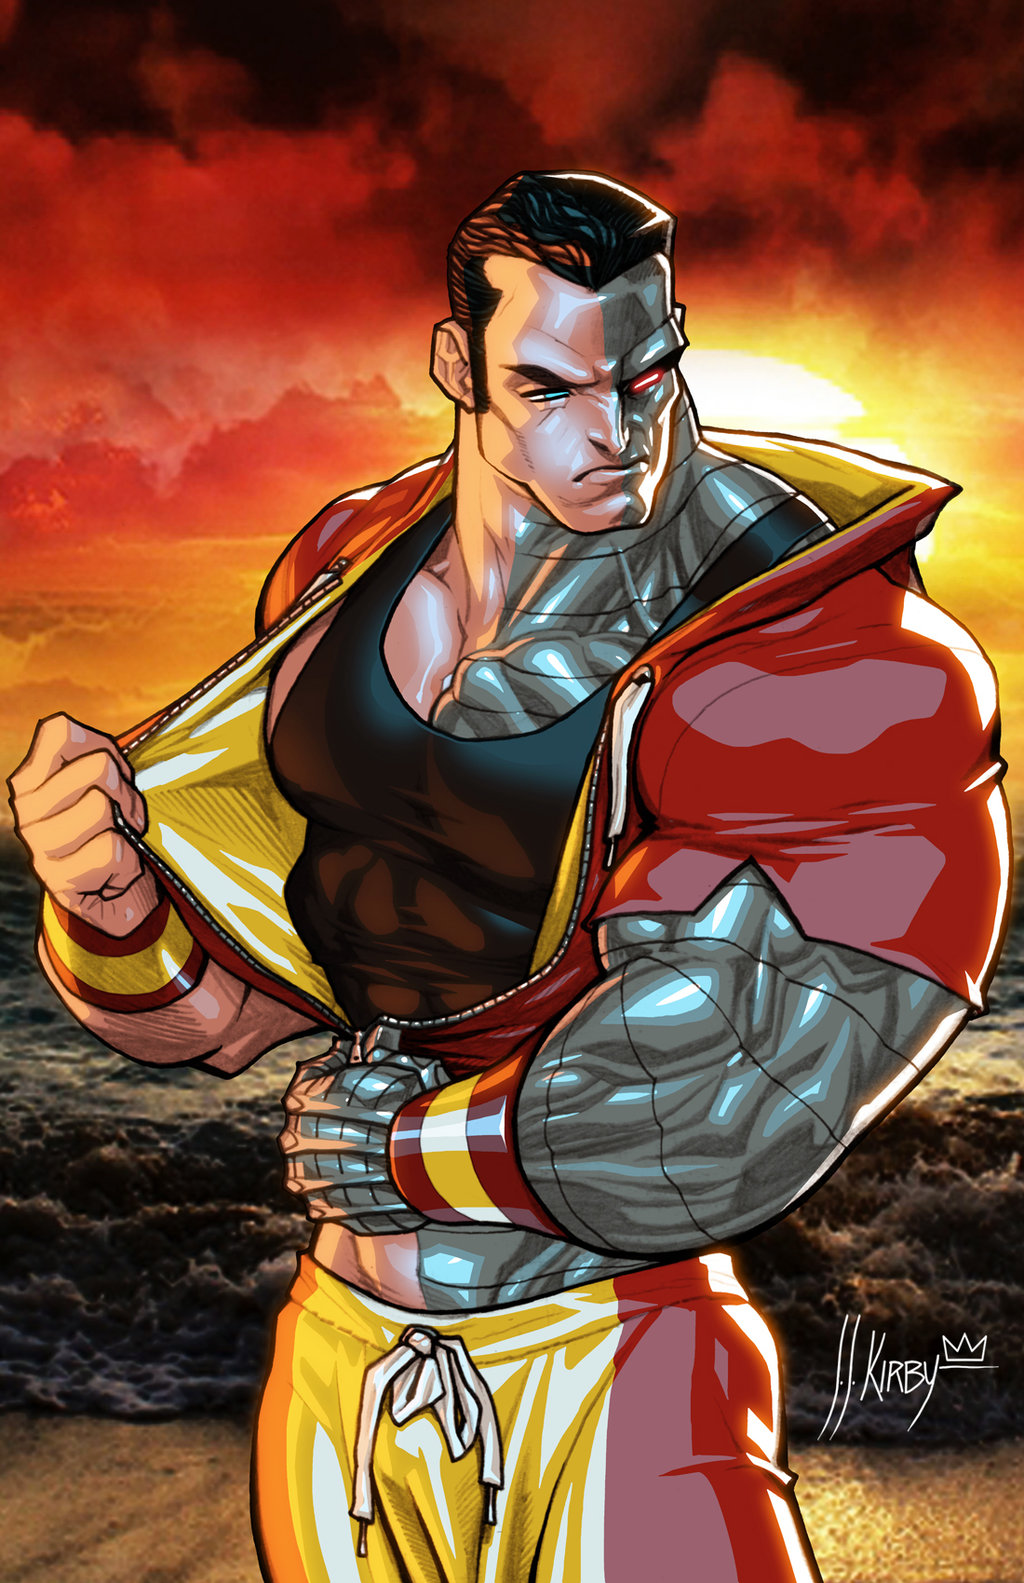 Colossus-by-JJ-Kirby-XMen-Mutants-wallpaper-wp540167